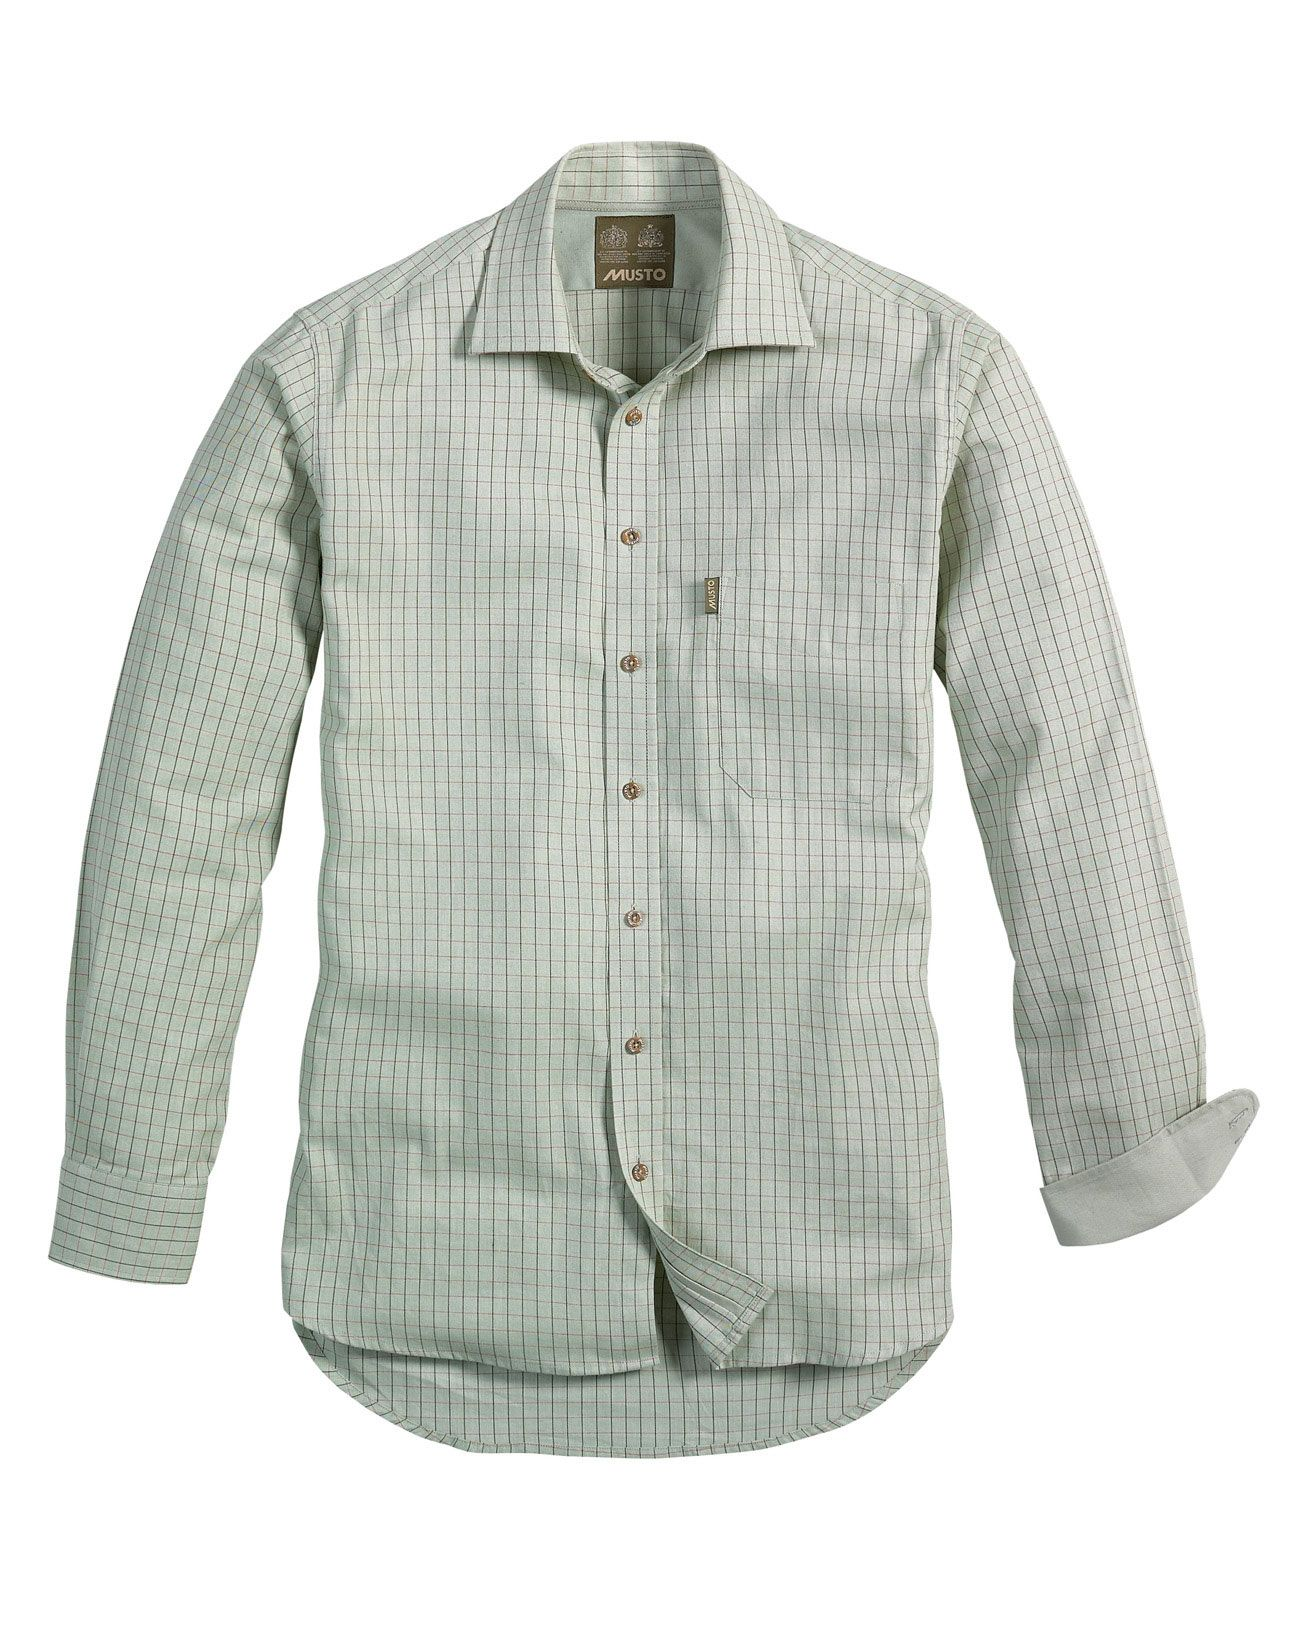 Bestselling sale items: MUSTO Men's Twill Check Shirt